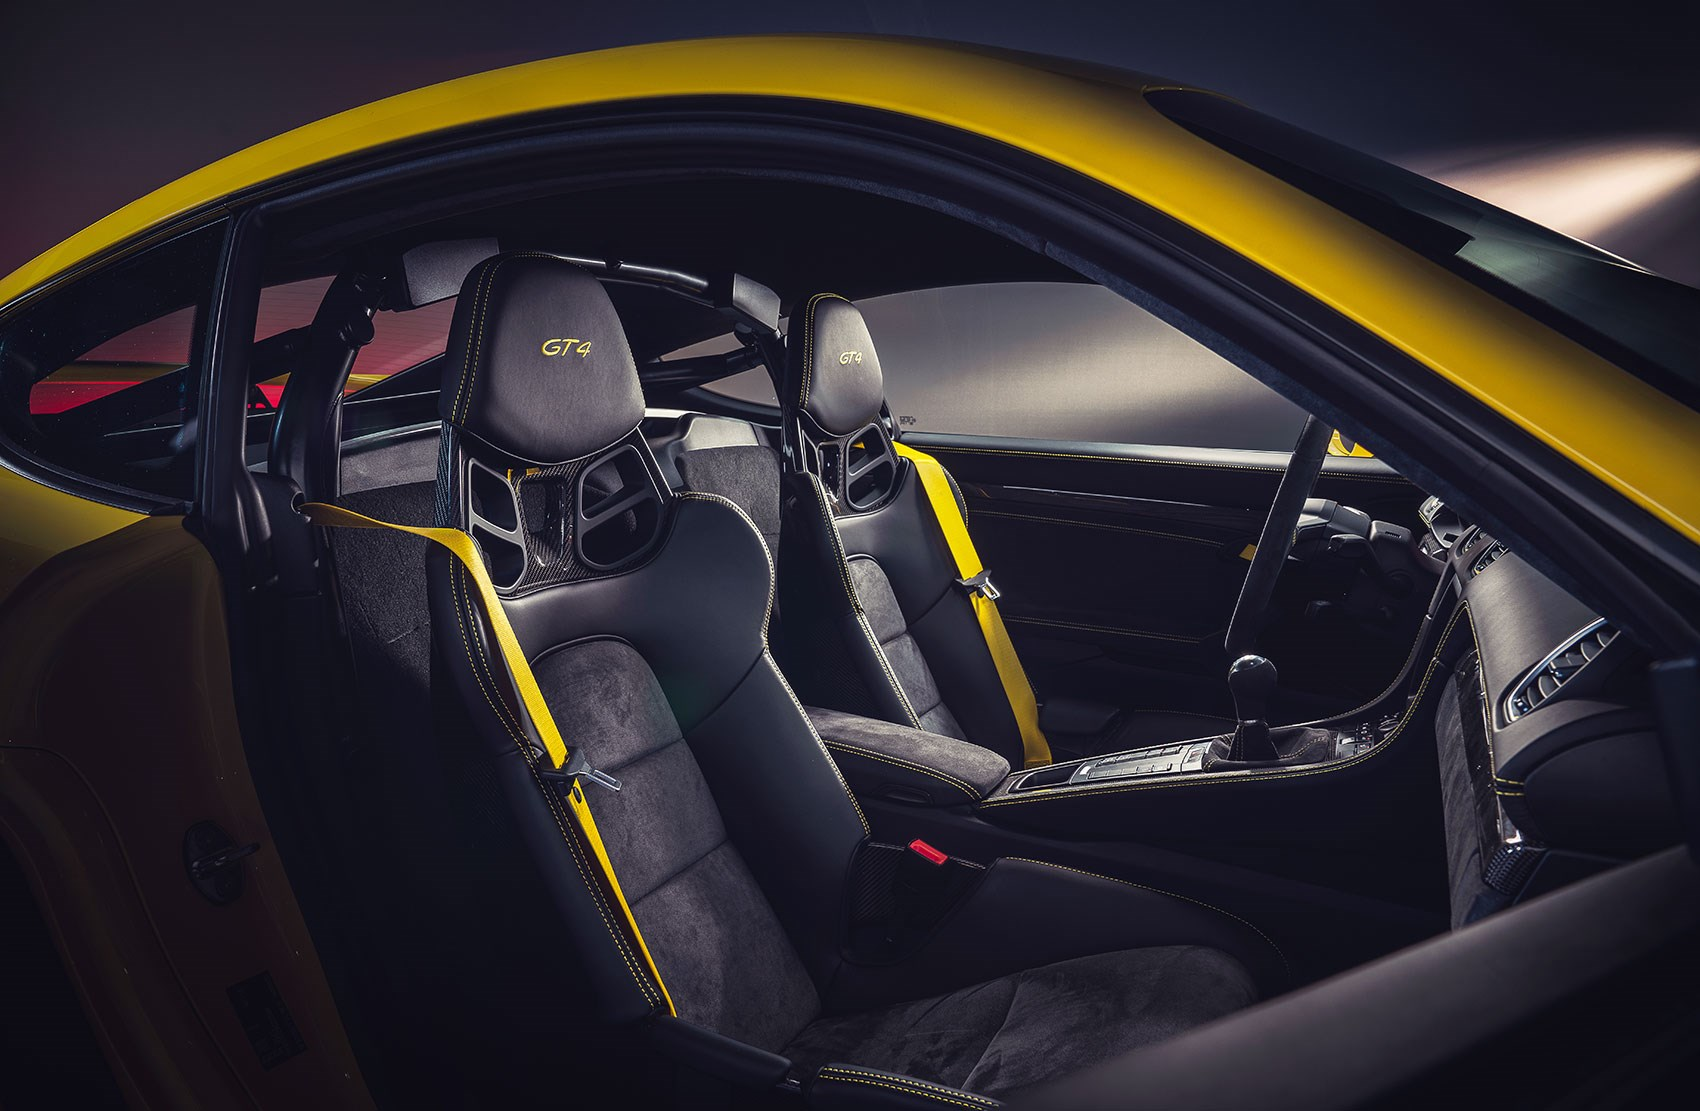 Porsche 718 Cayman GT4 news and pictures